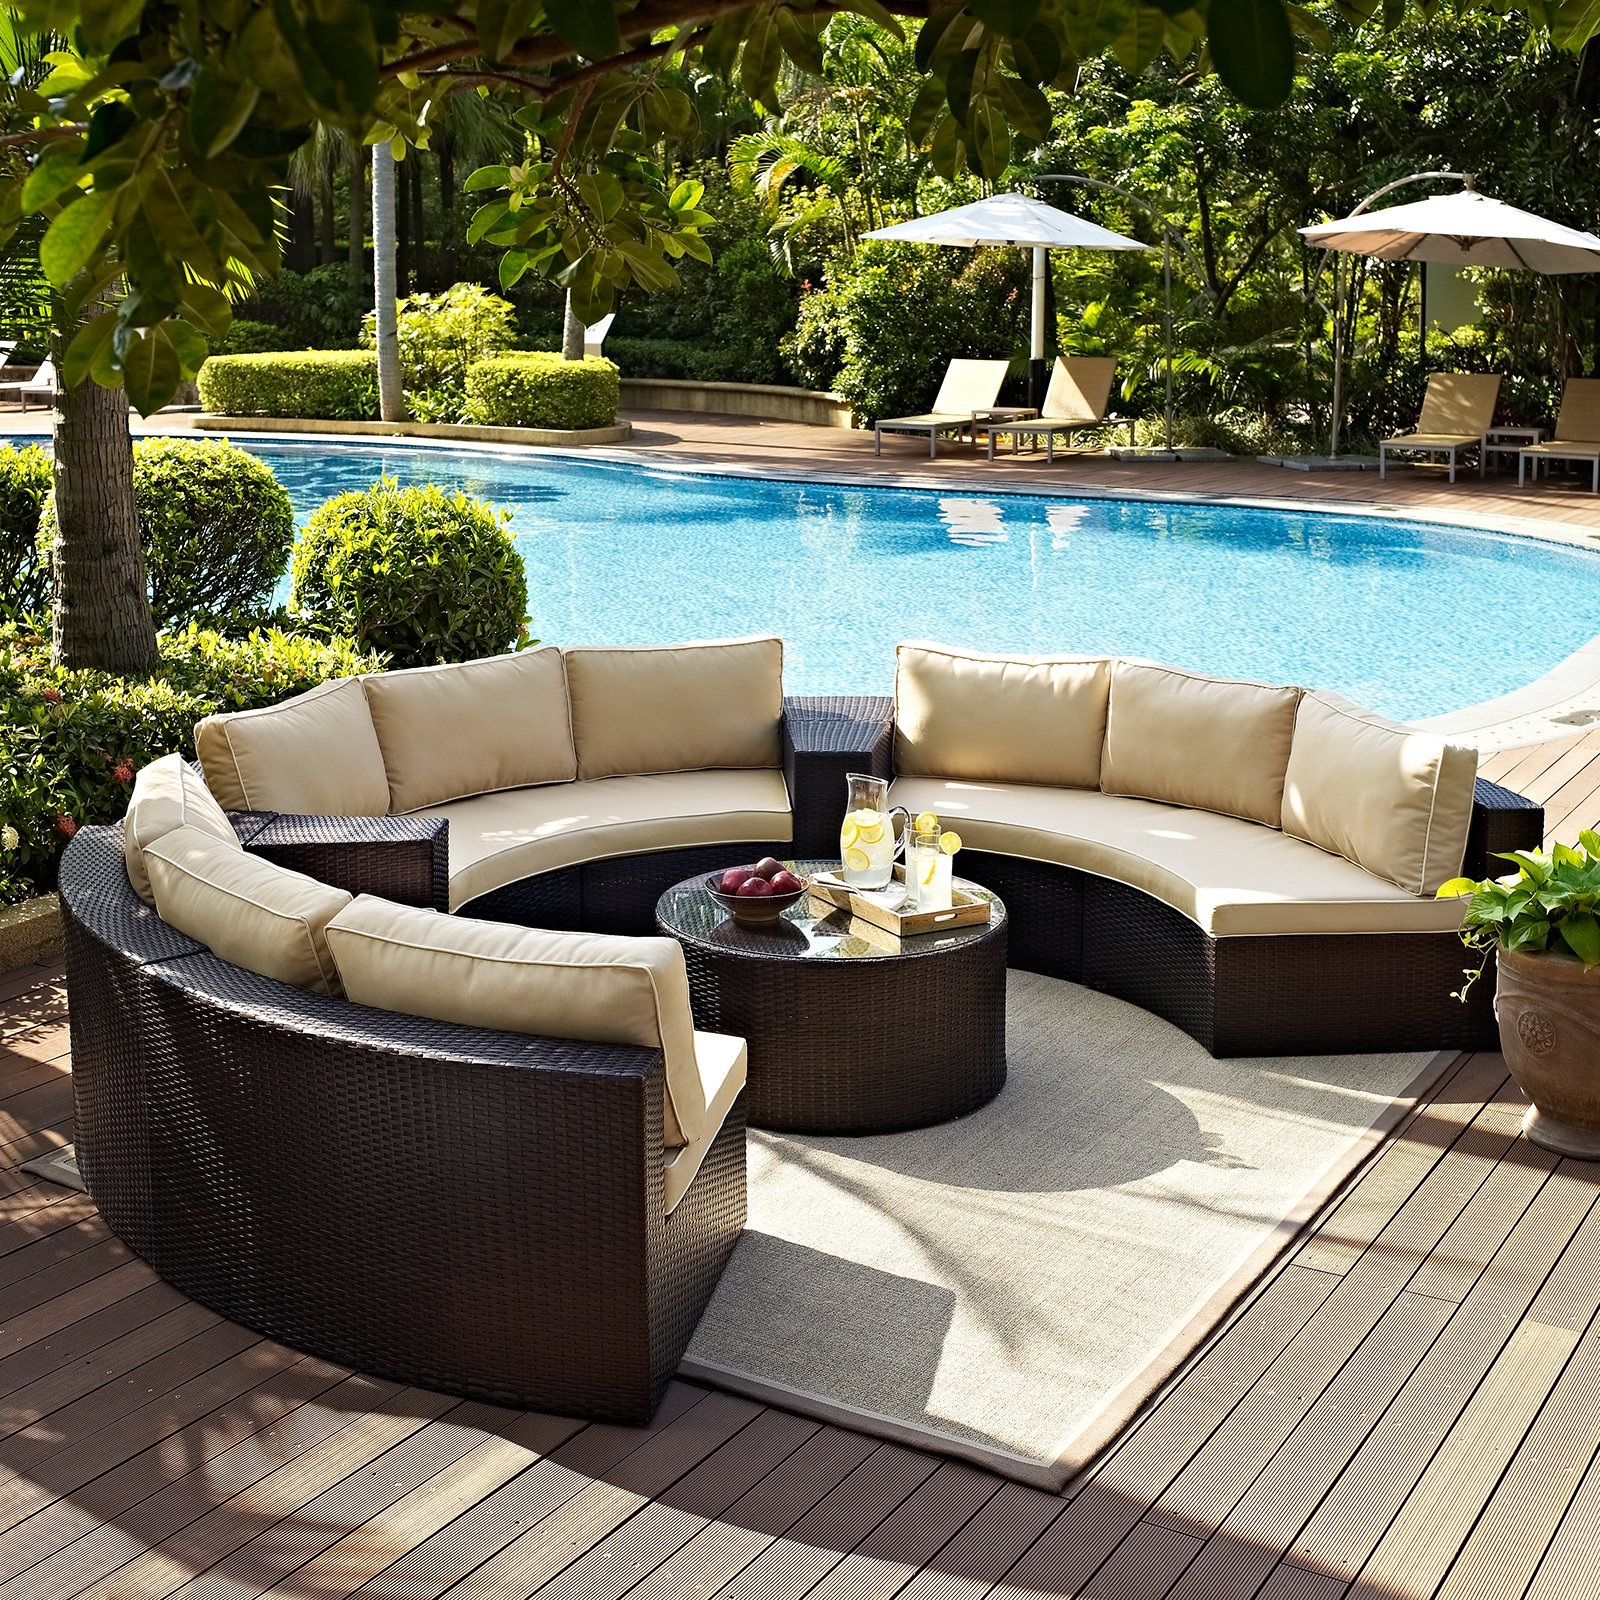 Exceptional Crosley Furniture Catalina 6 Piece Outdoor Wicker Seating Set With Sand  Cushions, 3 Round